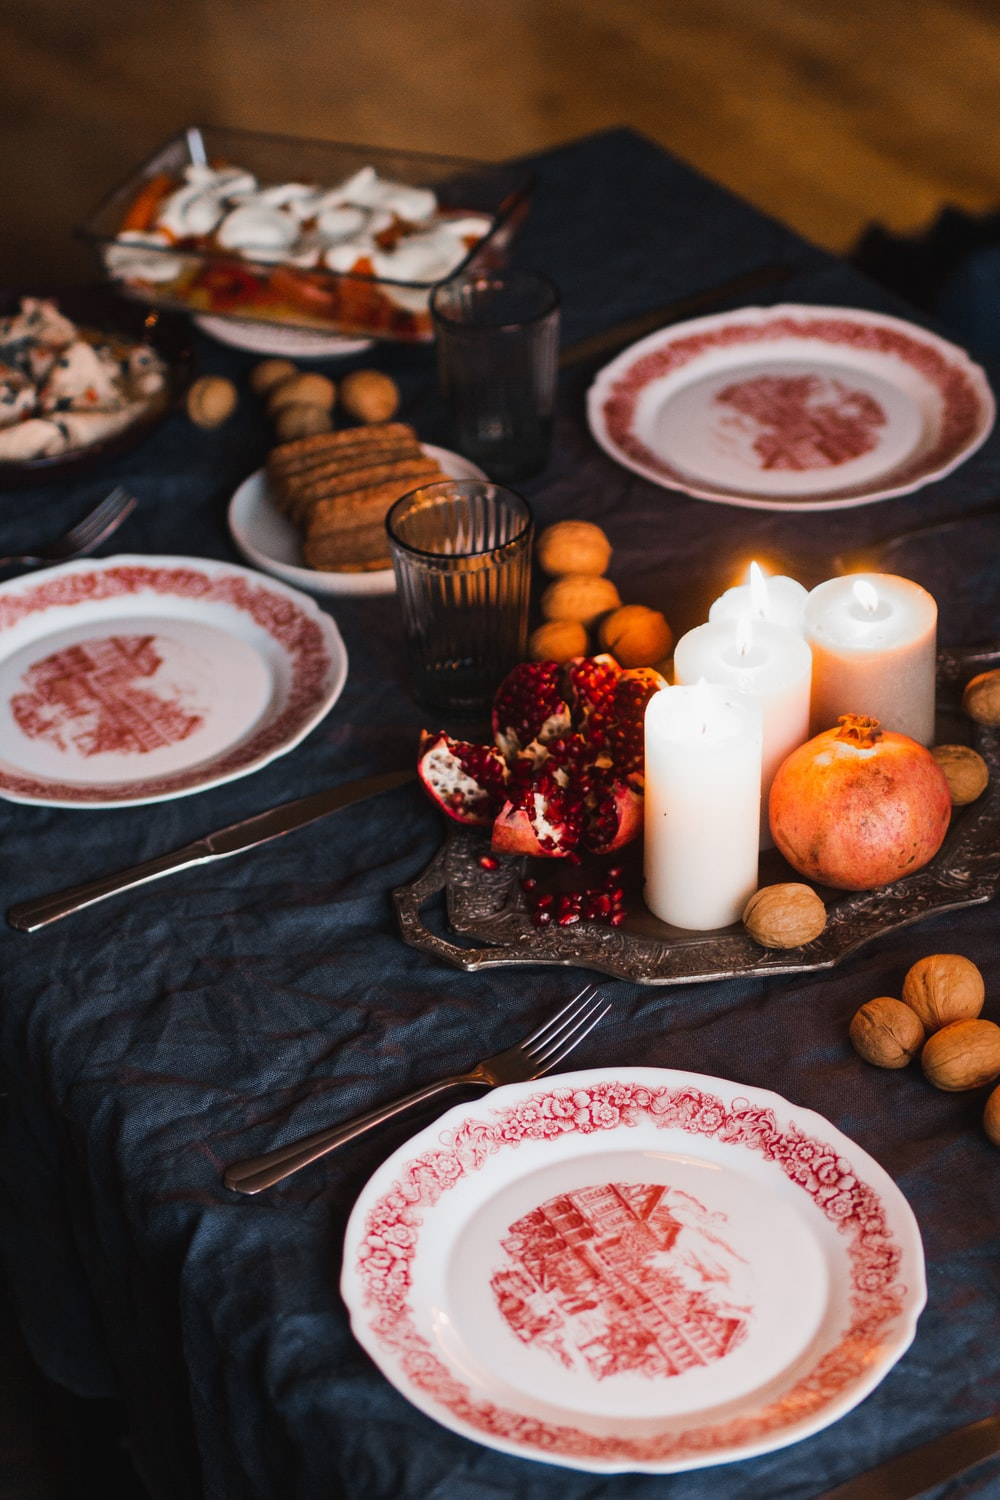 white and red ceramic plate with stainless steel fork beside brown cookies and white candles